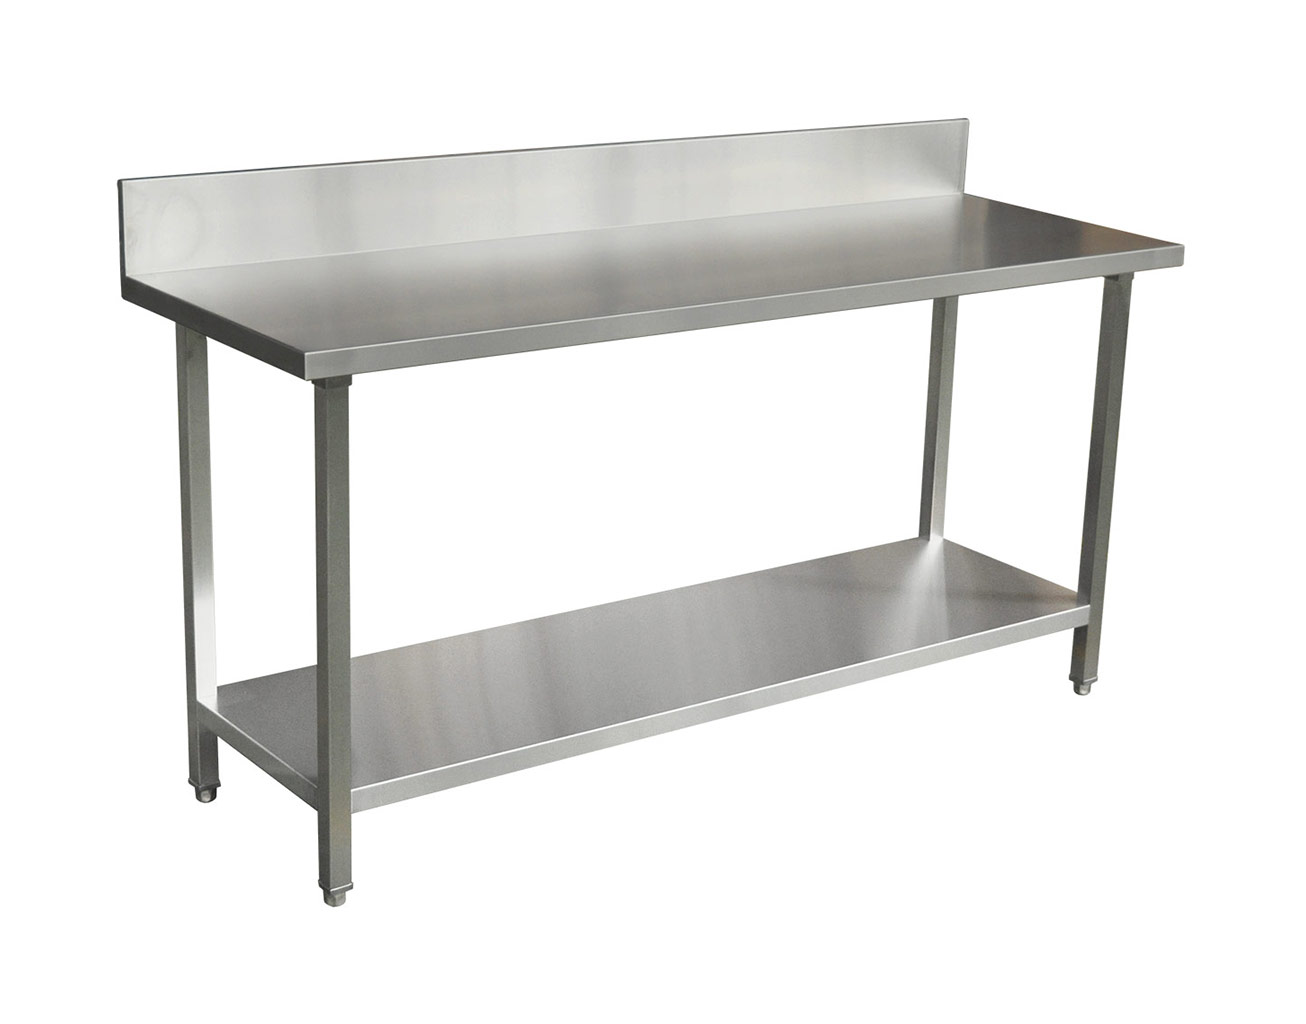 Commercial Grade Stainless Steel Splashback Bench, Premium Range 1800 X 610 X 900mm high